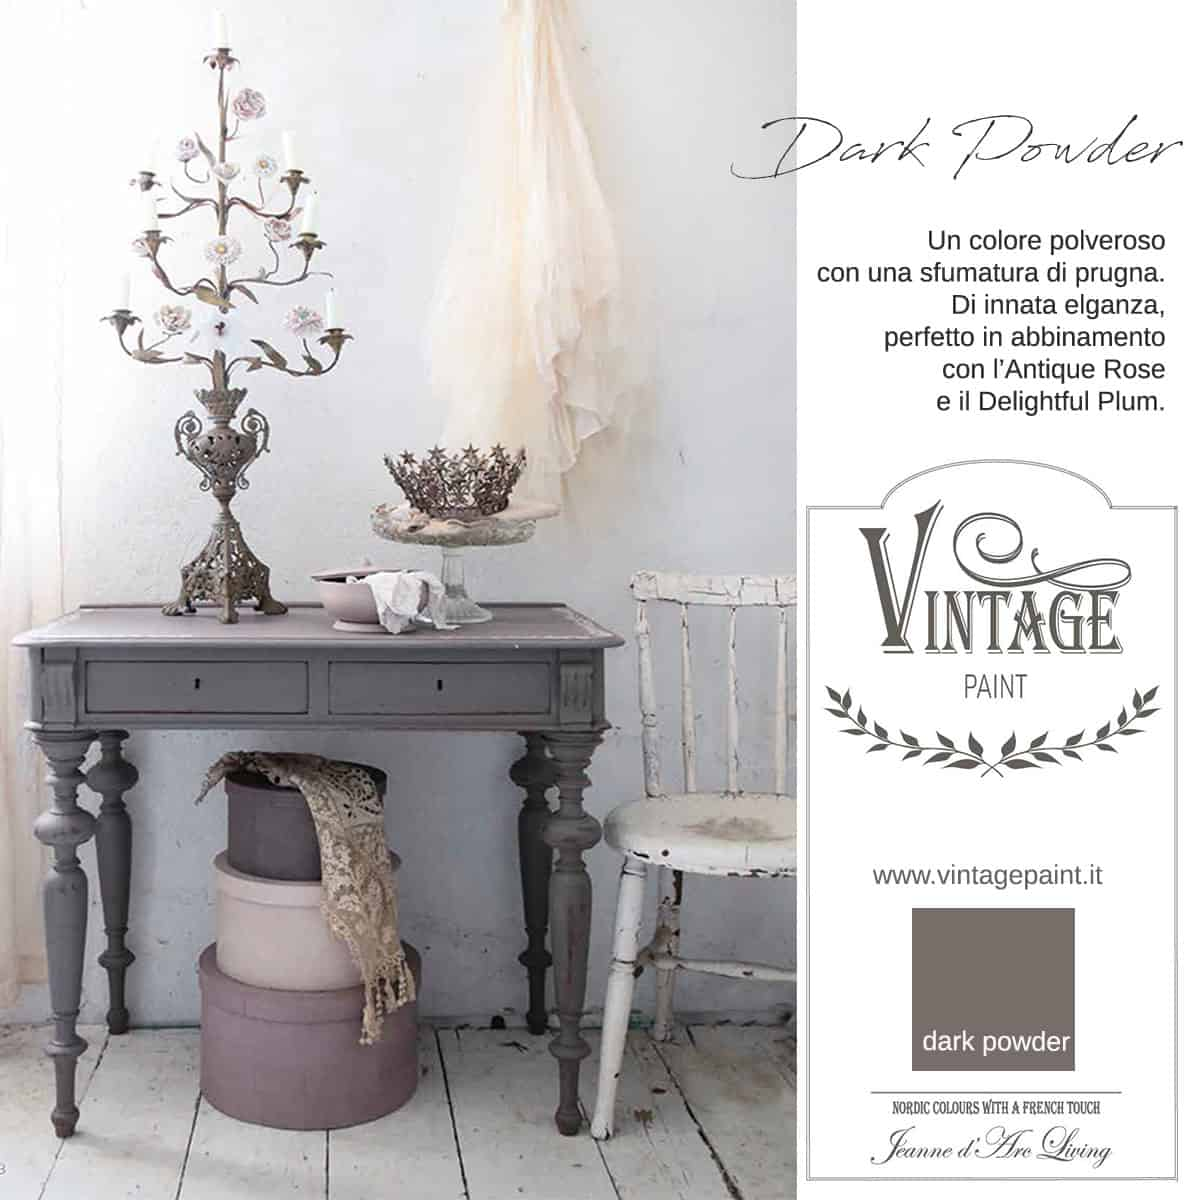 dark powder prugna viola vintage chalk paint vernici shabby chic autentico look gesso